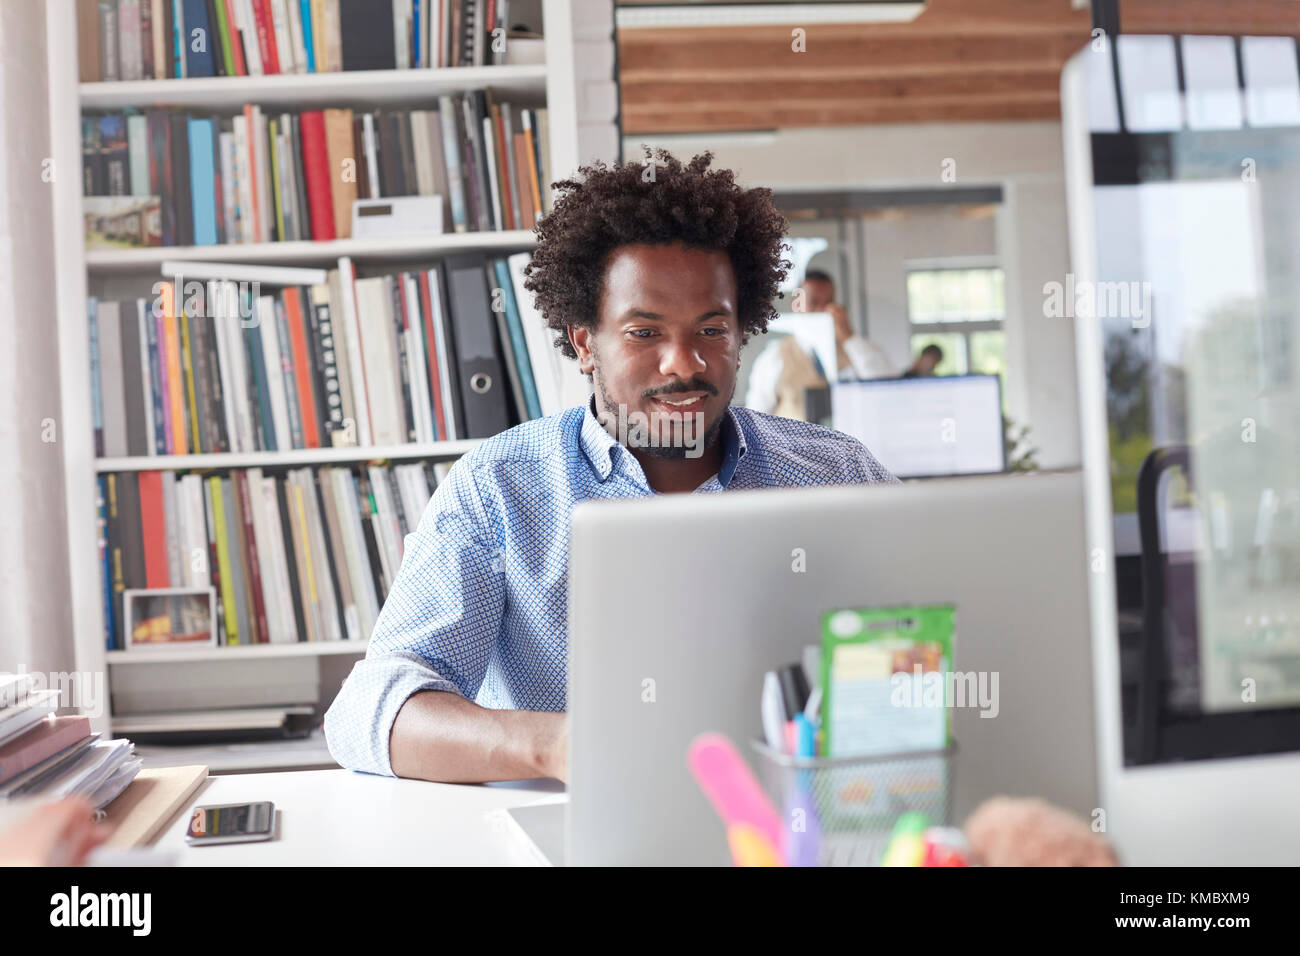 Businessman working at laptop in office - Stock Image